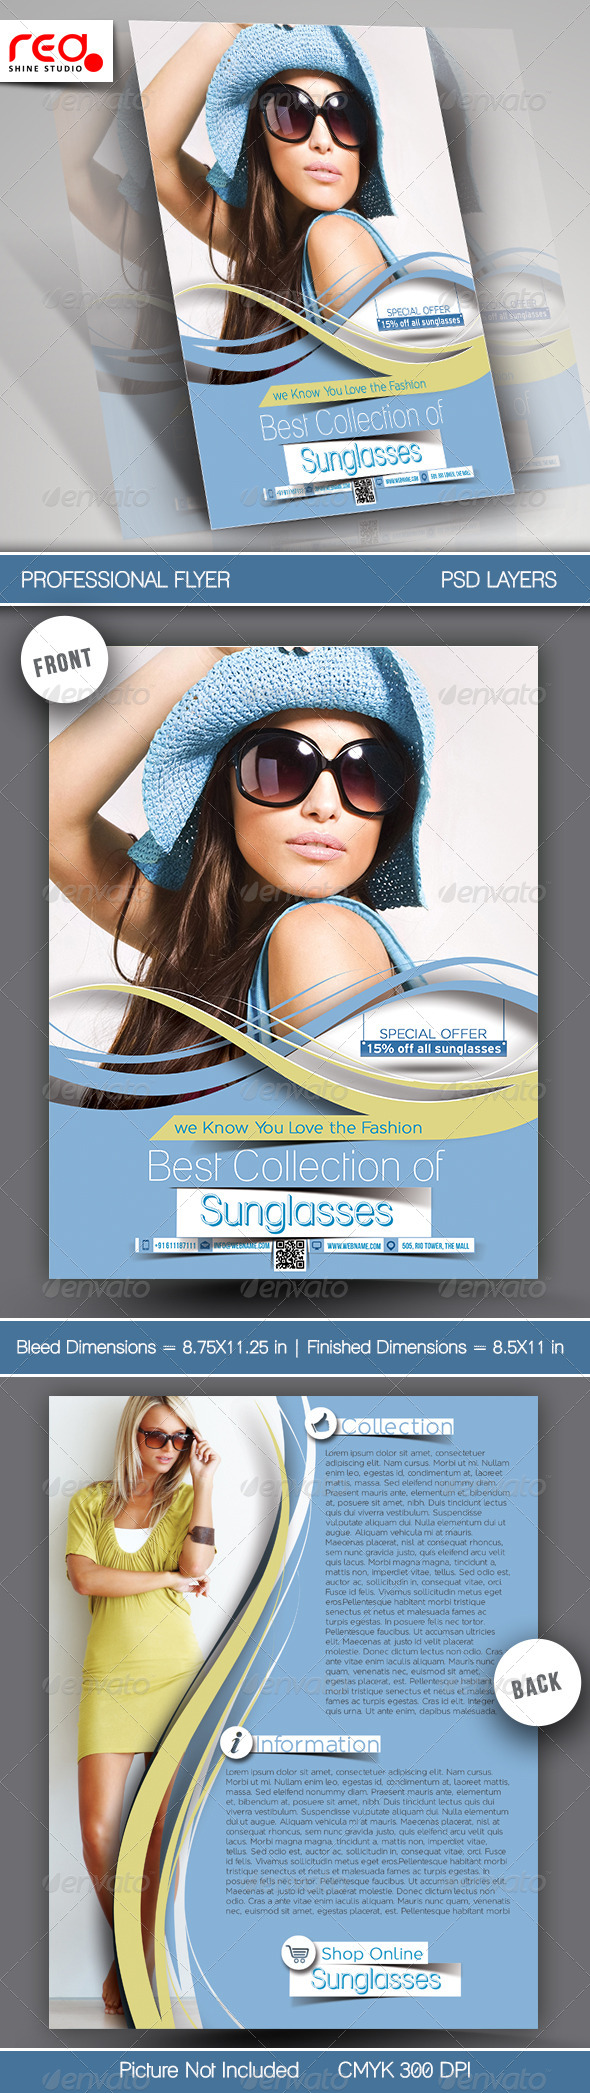 SunGlasses Fashion Store Flyer Template. - Commerce Flyers